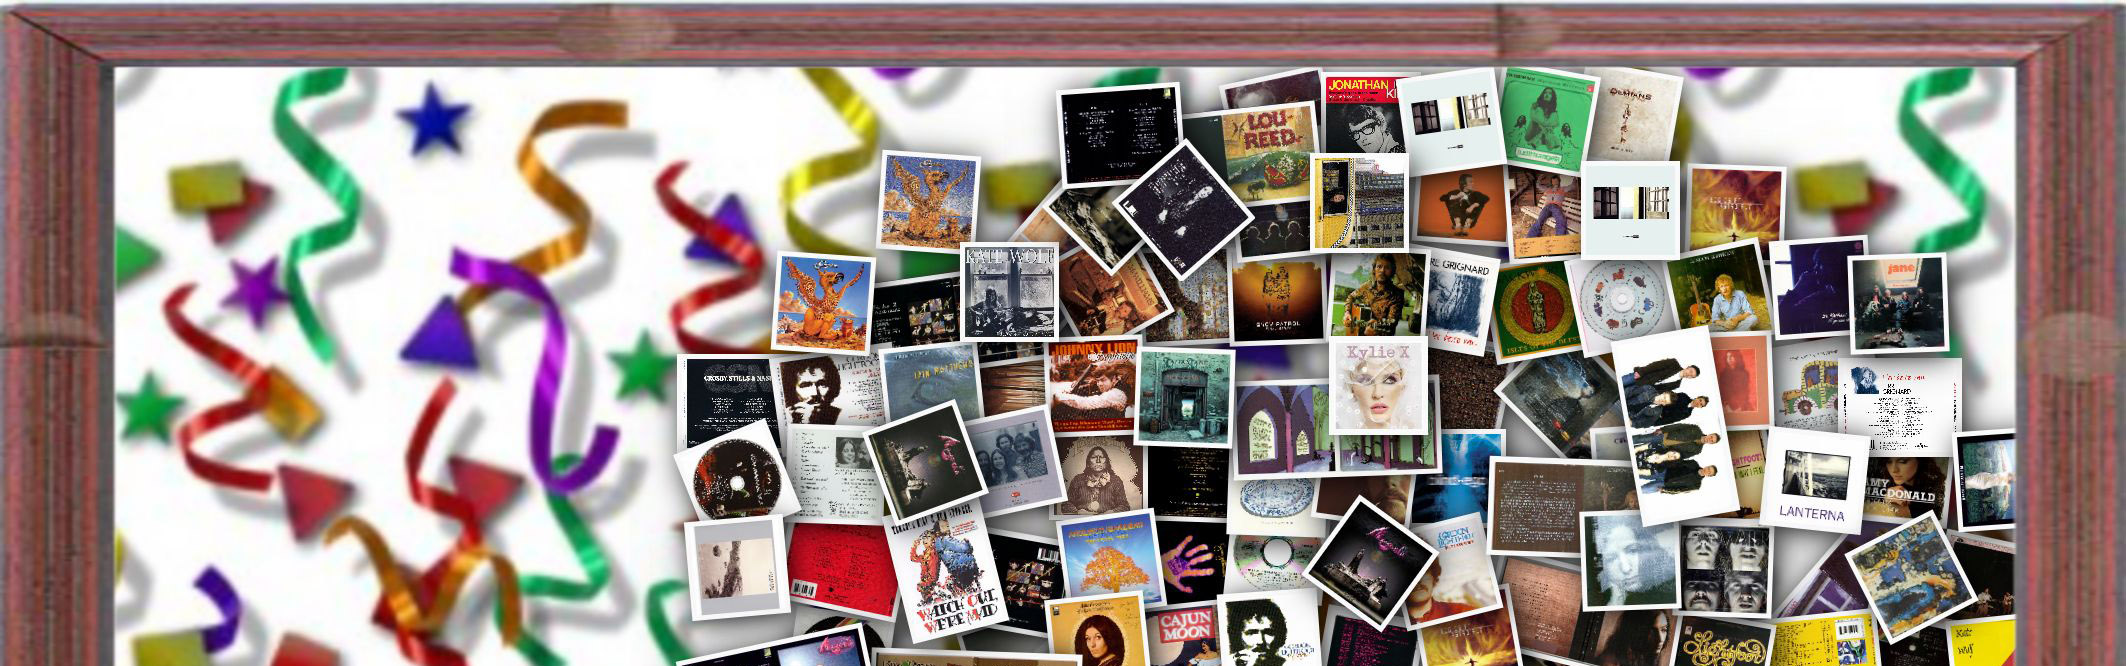 Collaizer when every picture counts about 100 pictures in a heart shape pattern each picture was put in a simple white frame edge and we added a modest shade to make it look 3d jeuxipadfo Gallery